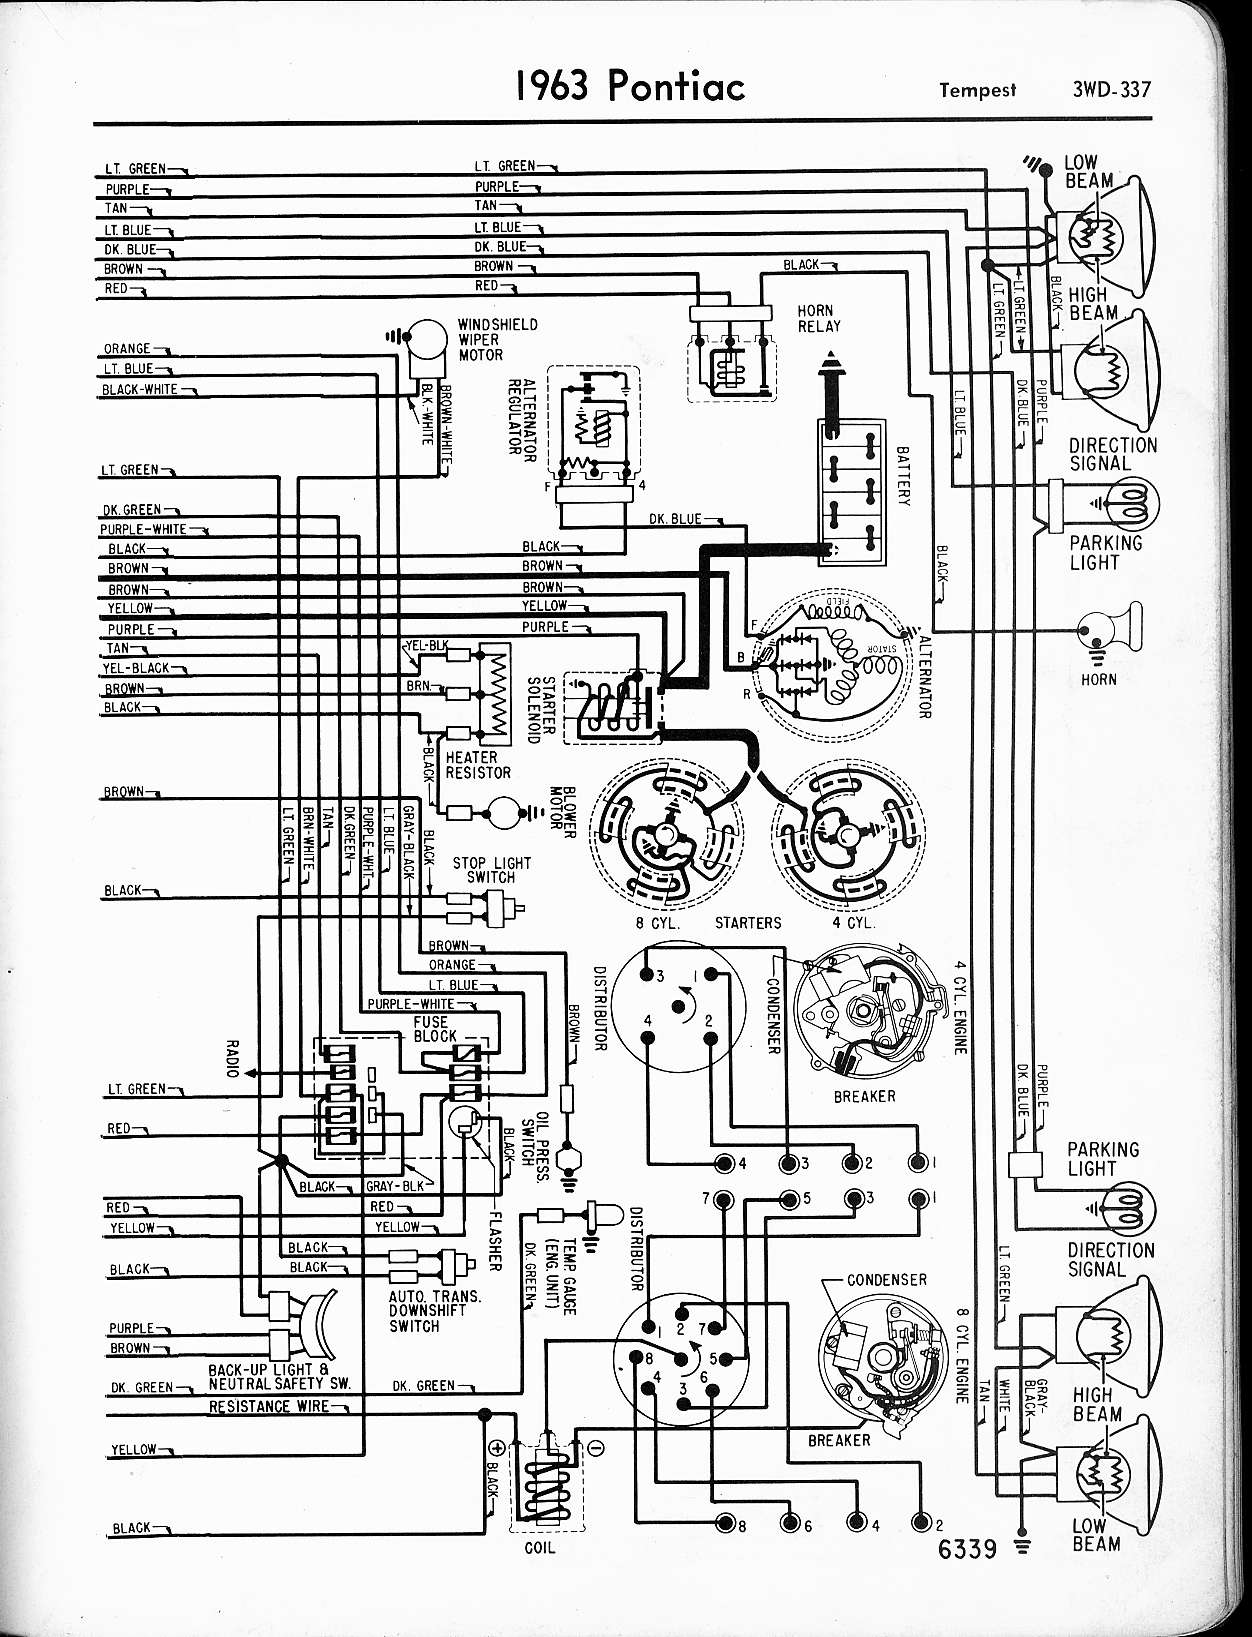 67 Camaro Fuse Box Wiring Library Engine Diagram 65 Gto Schematic Just Data 1966 Corvette Dash 1965